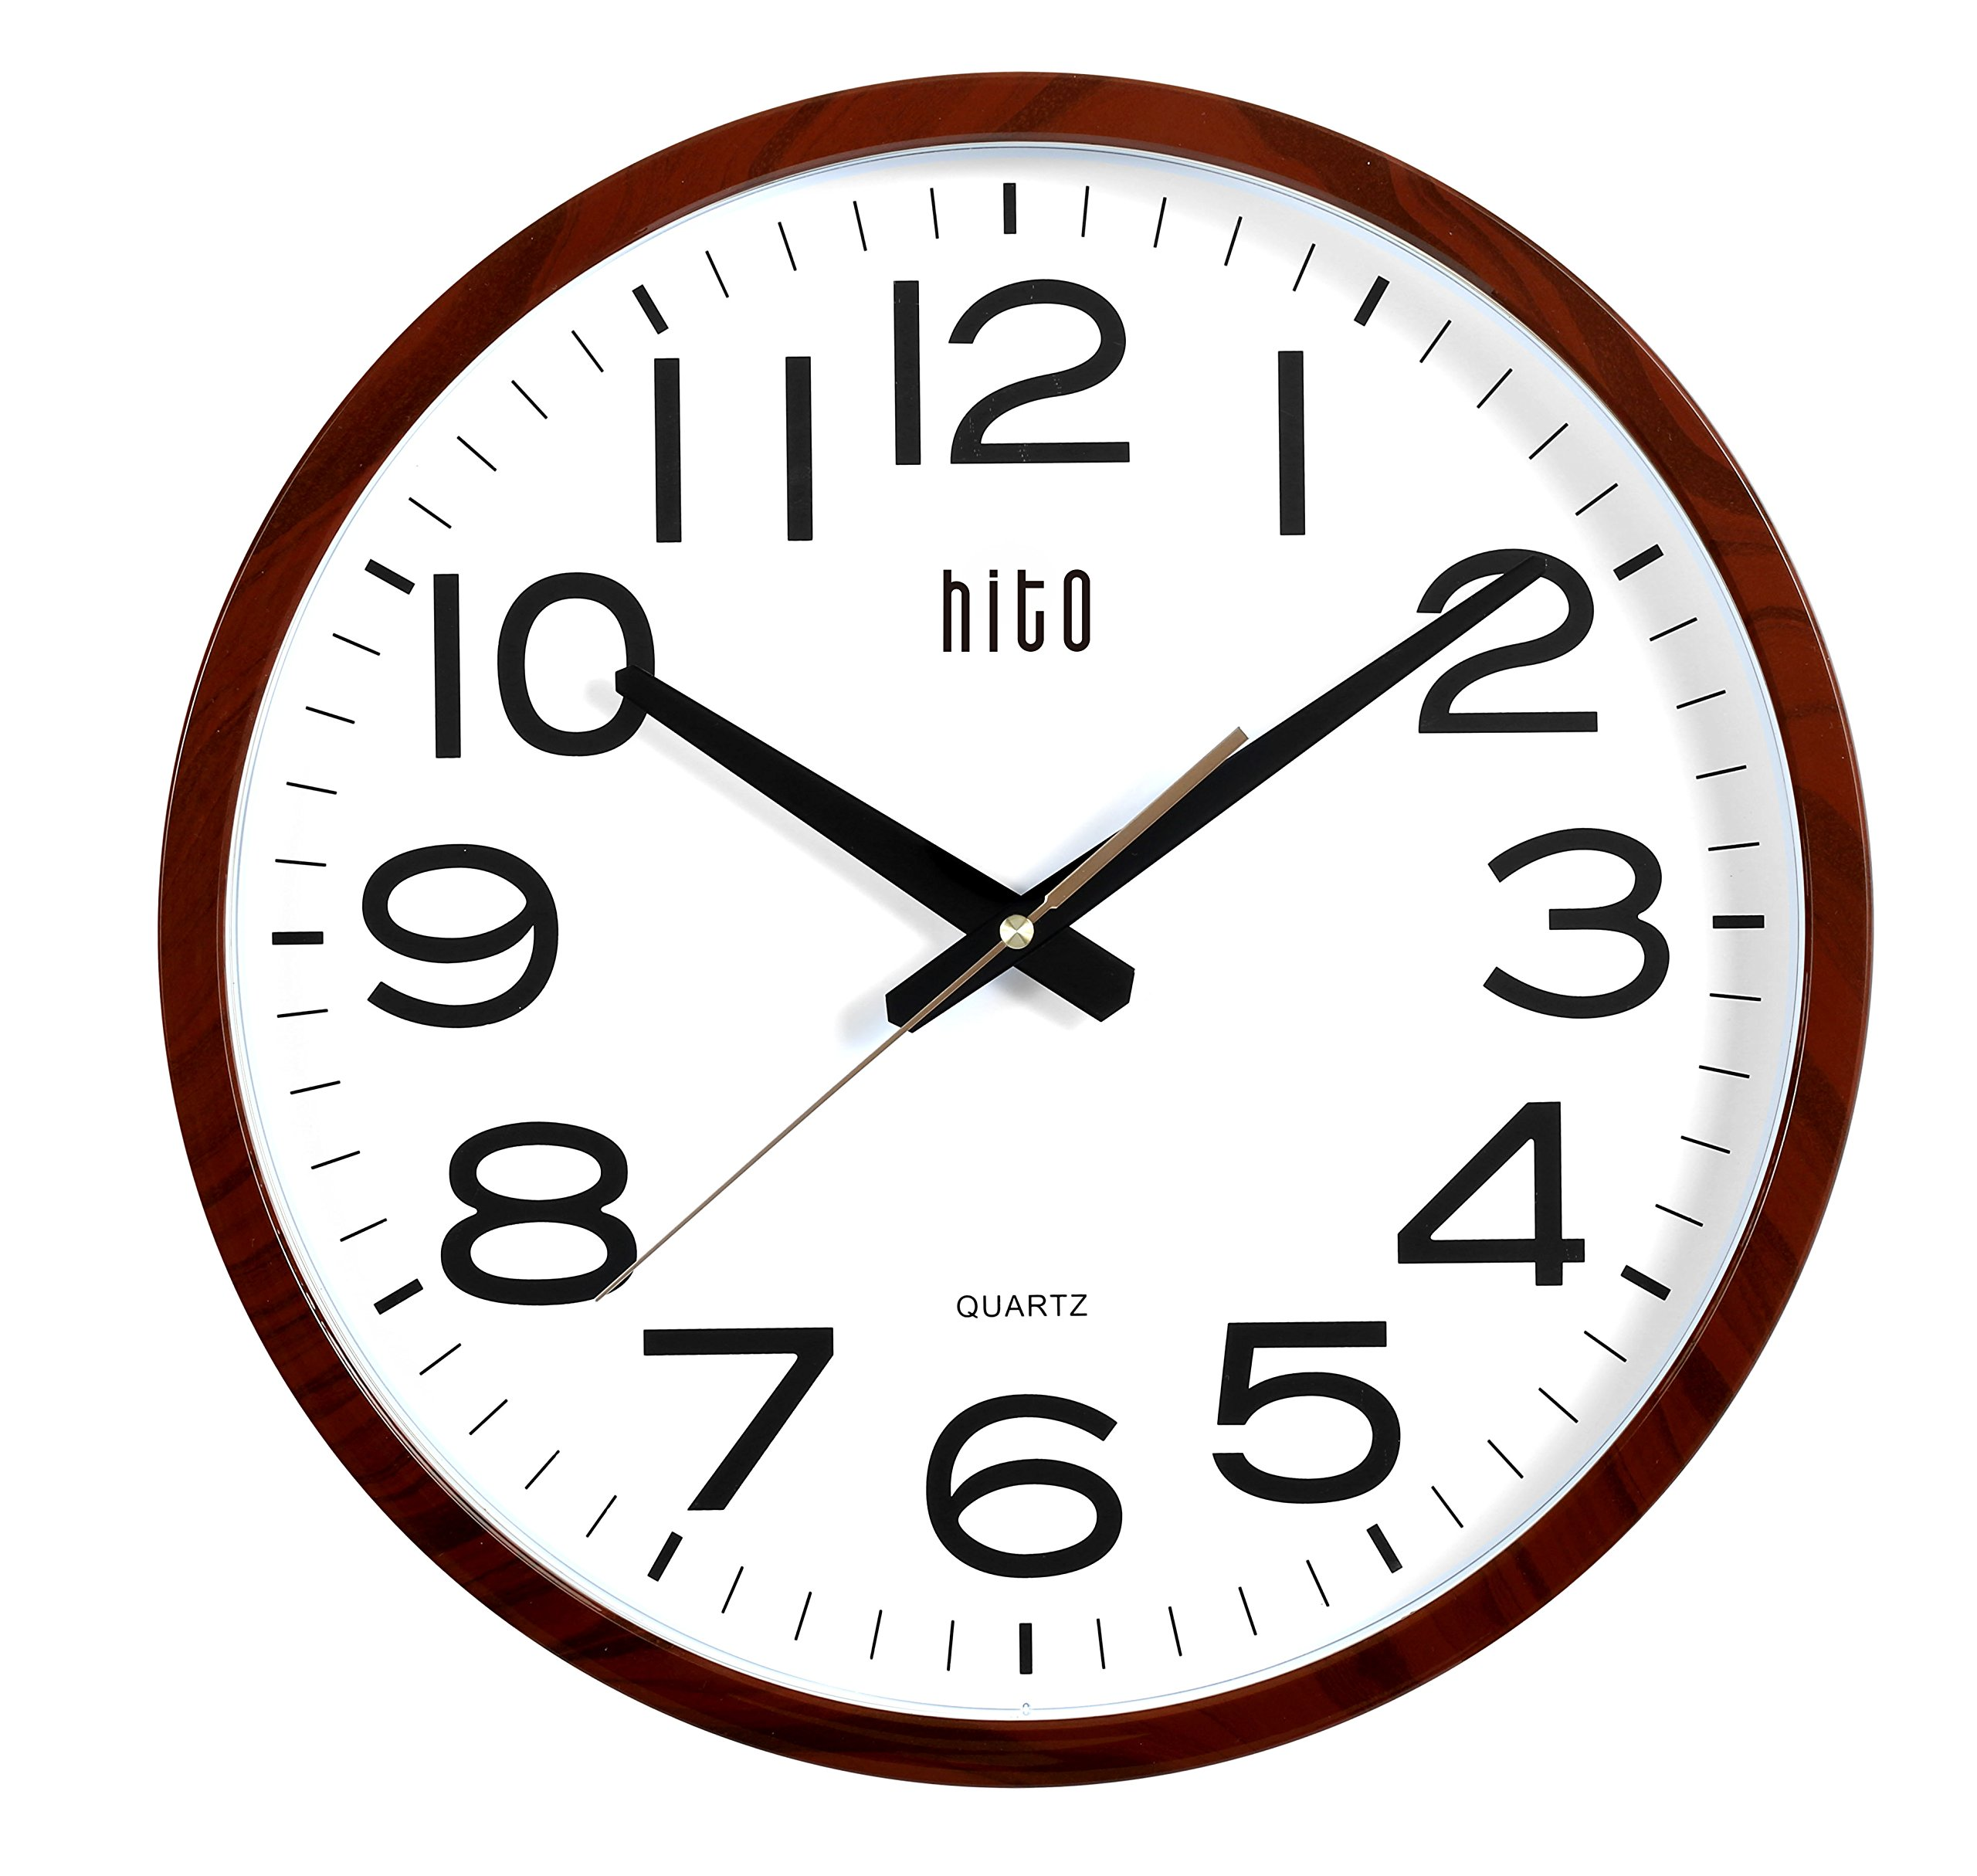 hito Modern Extra Large Oversized Silent Non-ticking Wall Clock- Glass Cover (16 inches, Wood)